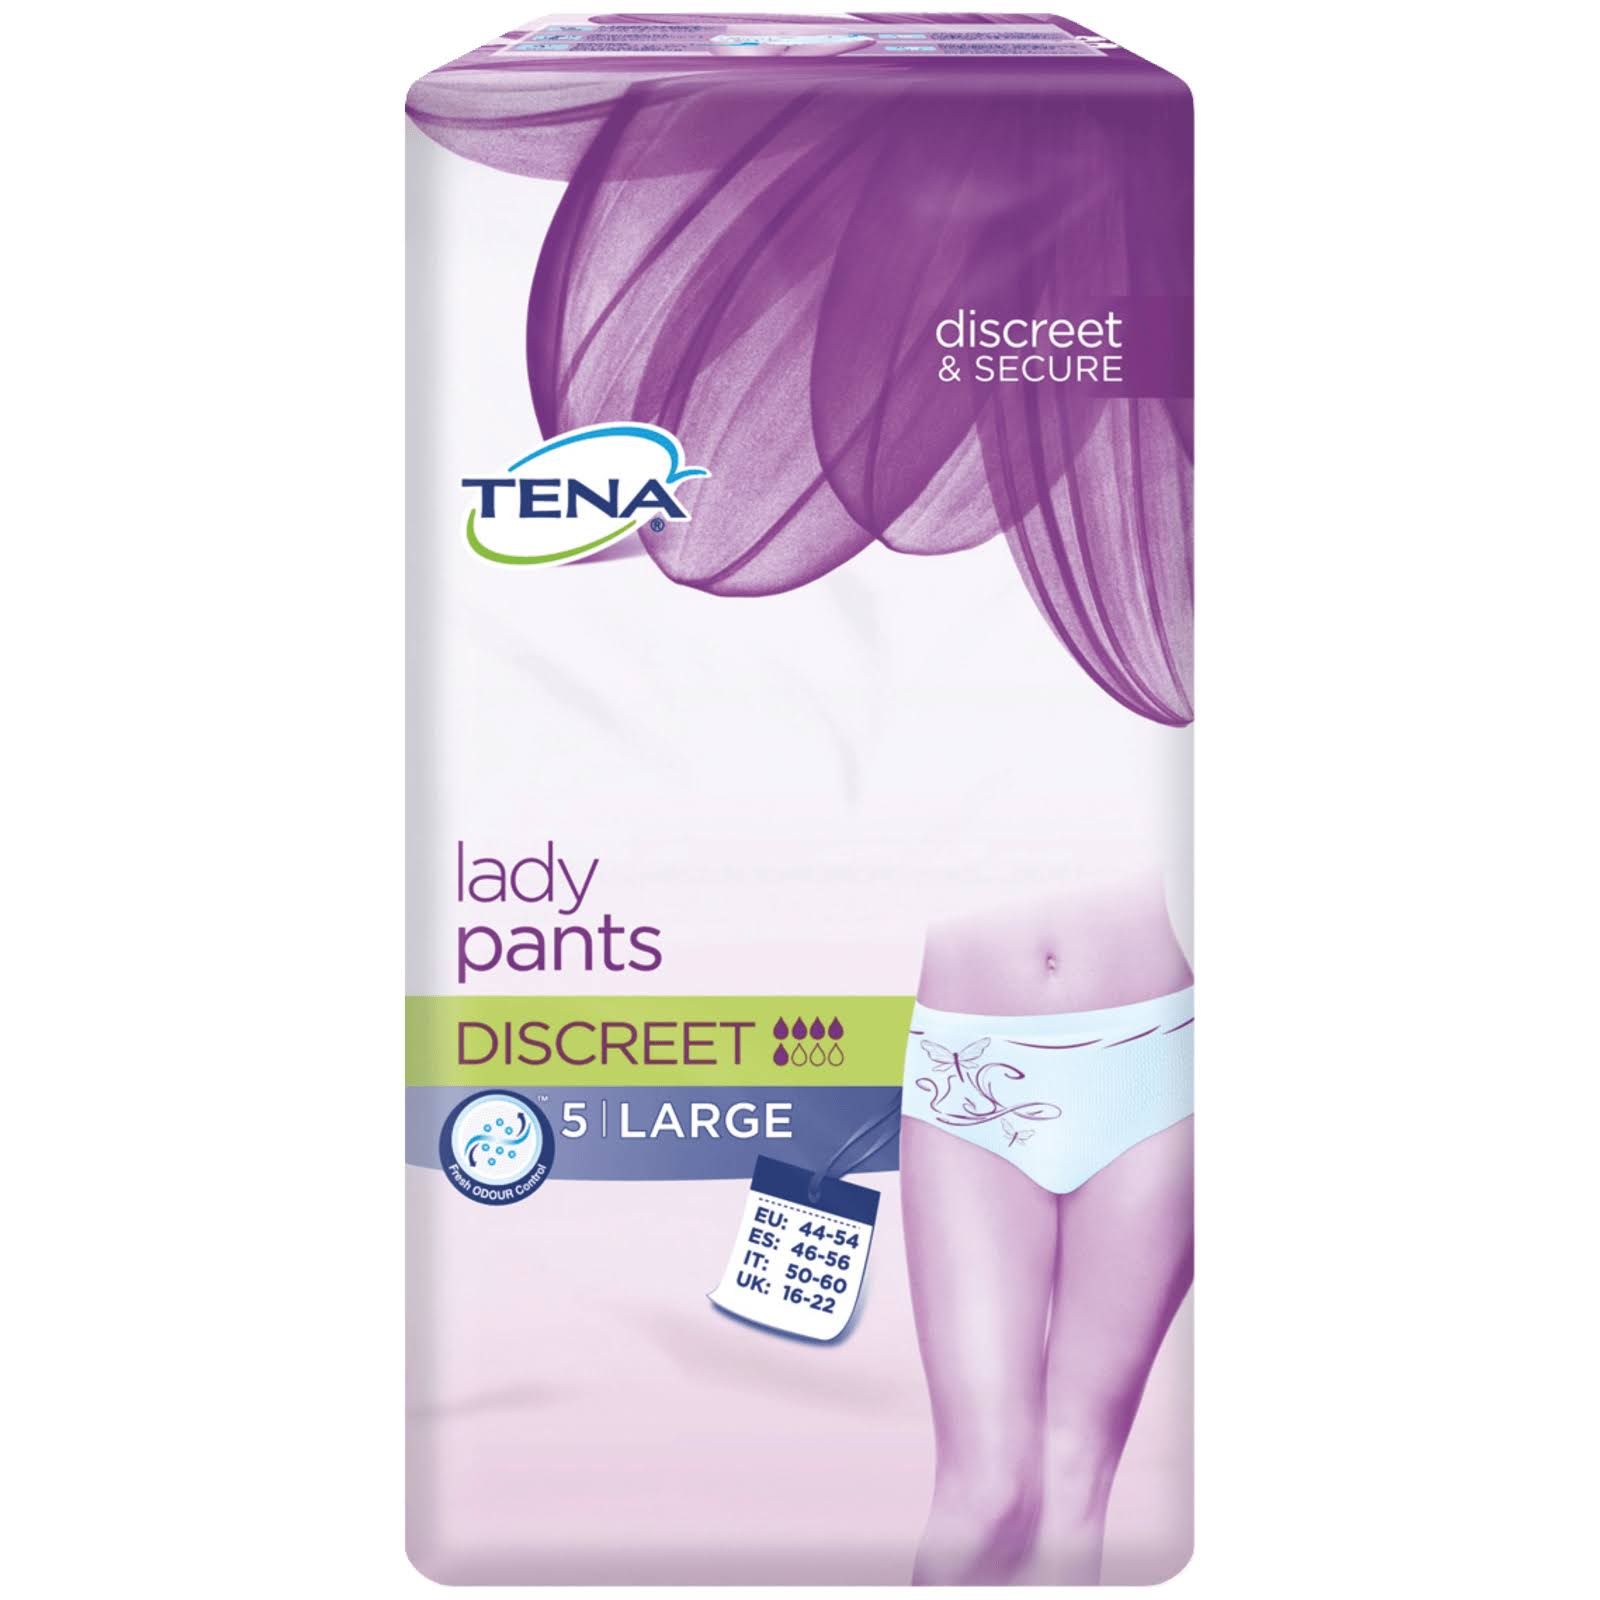 Tena Discreet Lady Pants - Large, 5pcs